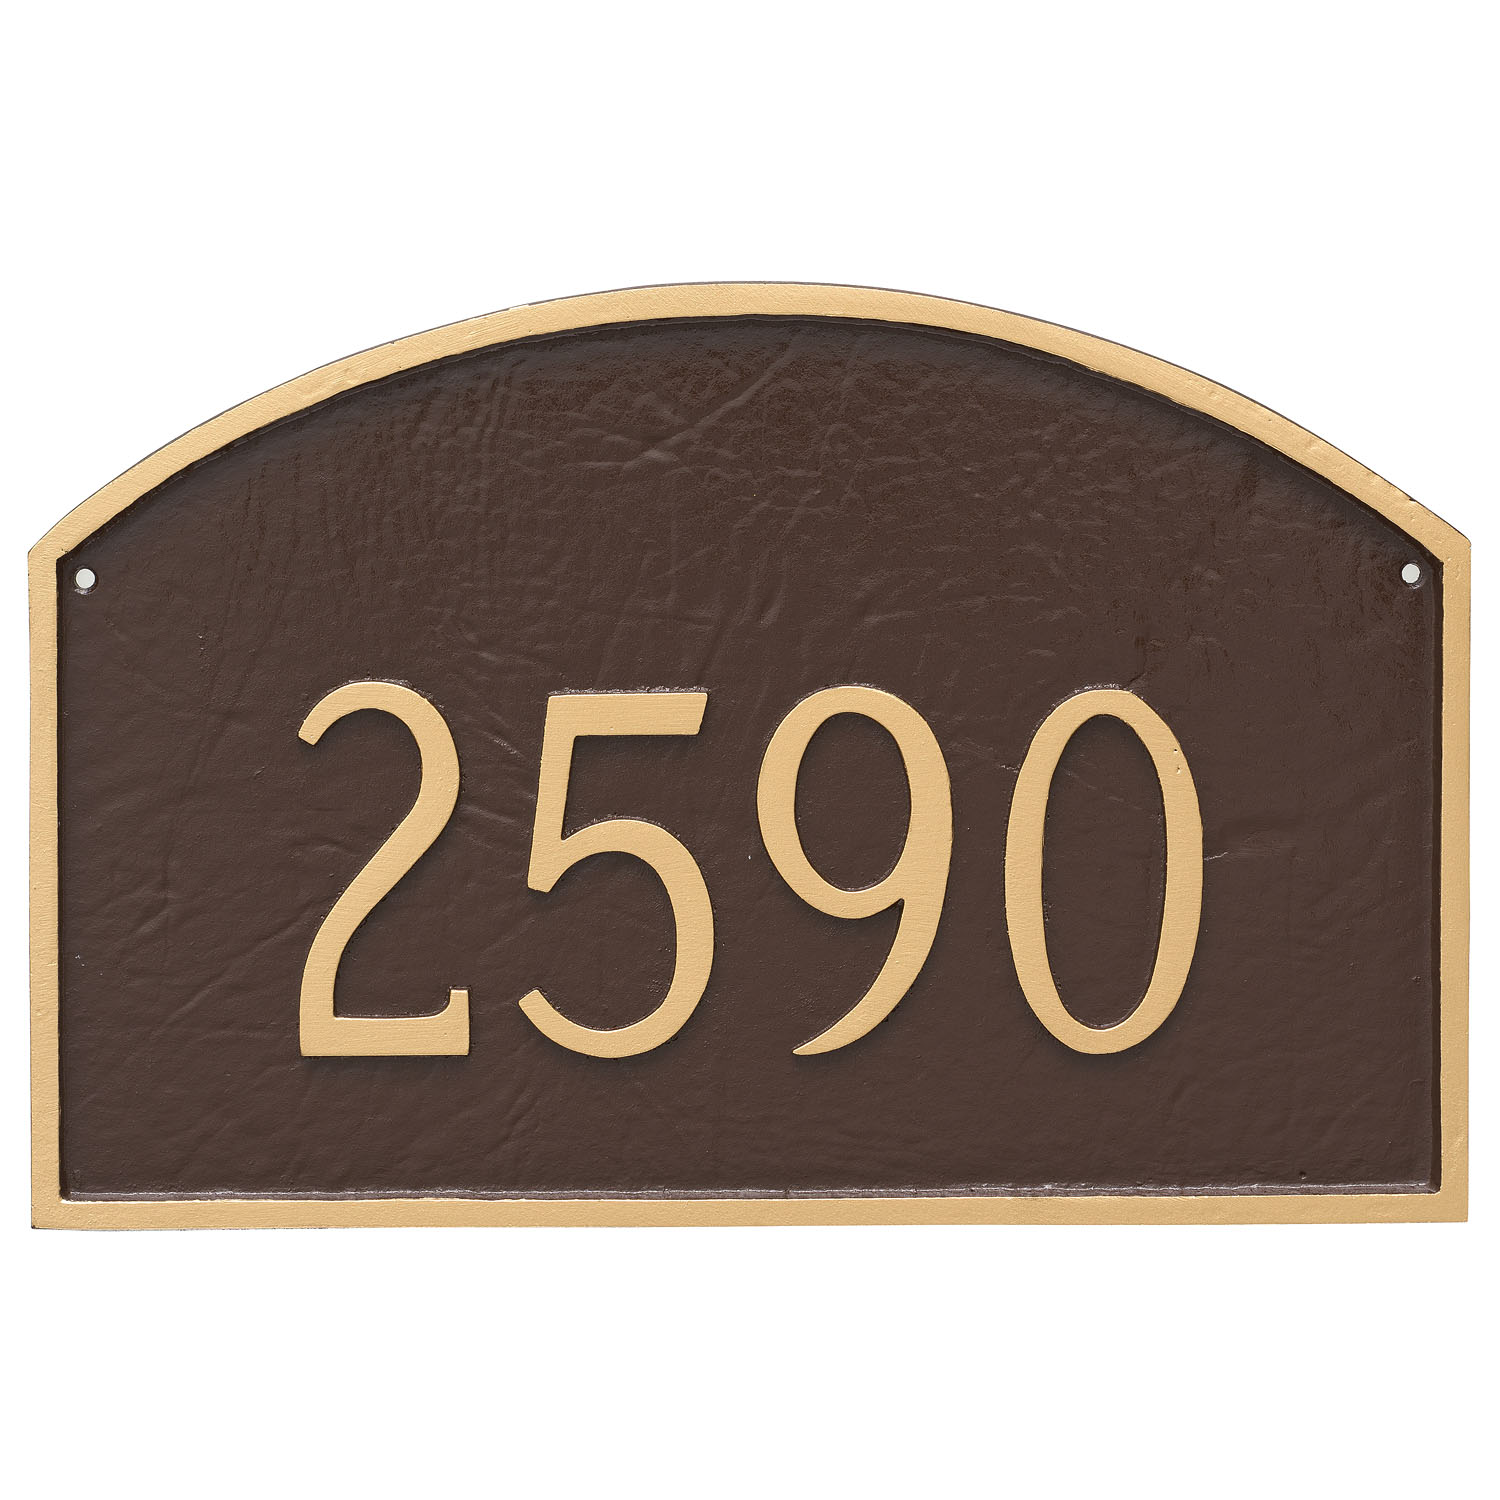 Prestige Arch Address Plaque - Standard